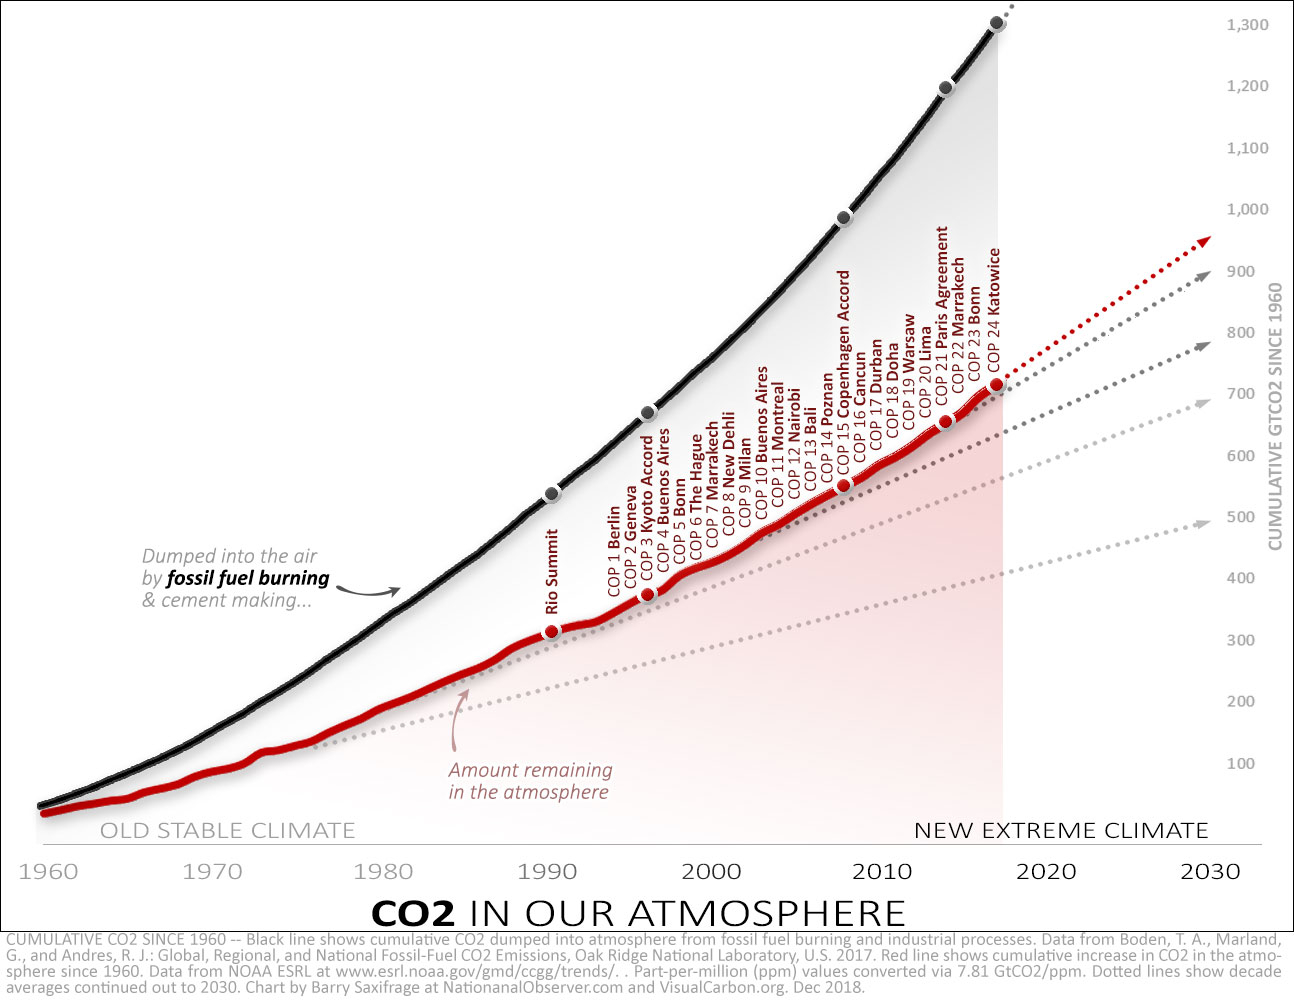 Cumulative fossil fuel CO2 since 1960. Red line shows amount remaining in the atmosphere. Annotated with UN COP years.